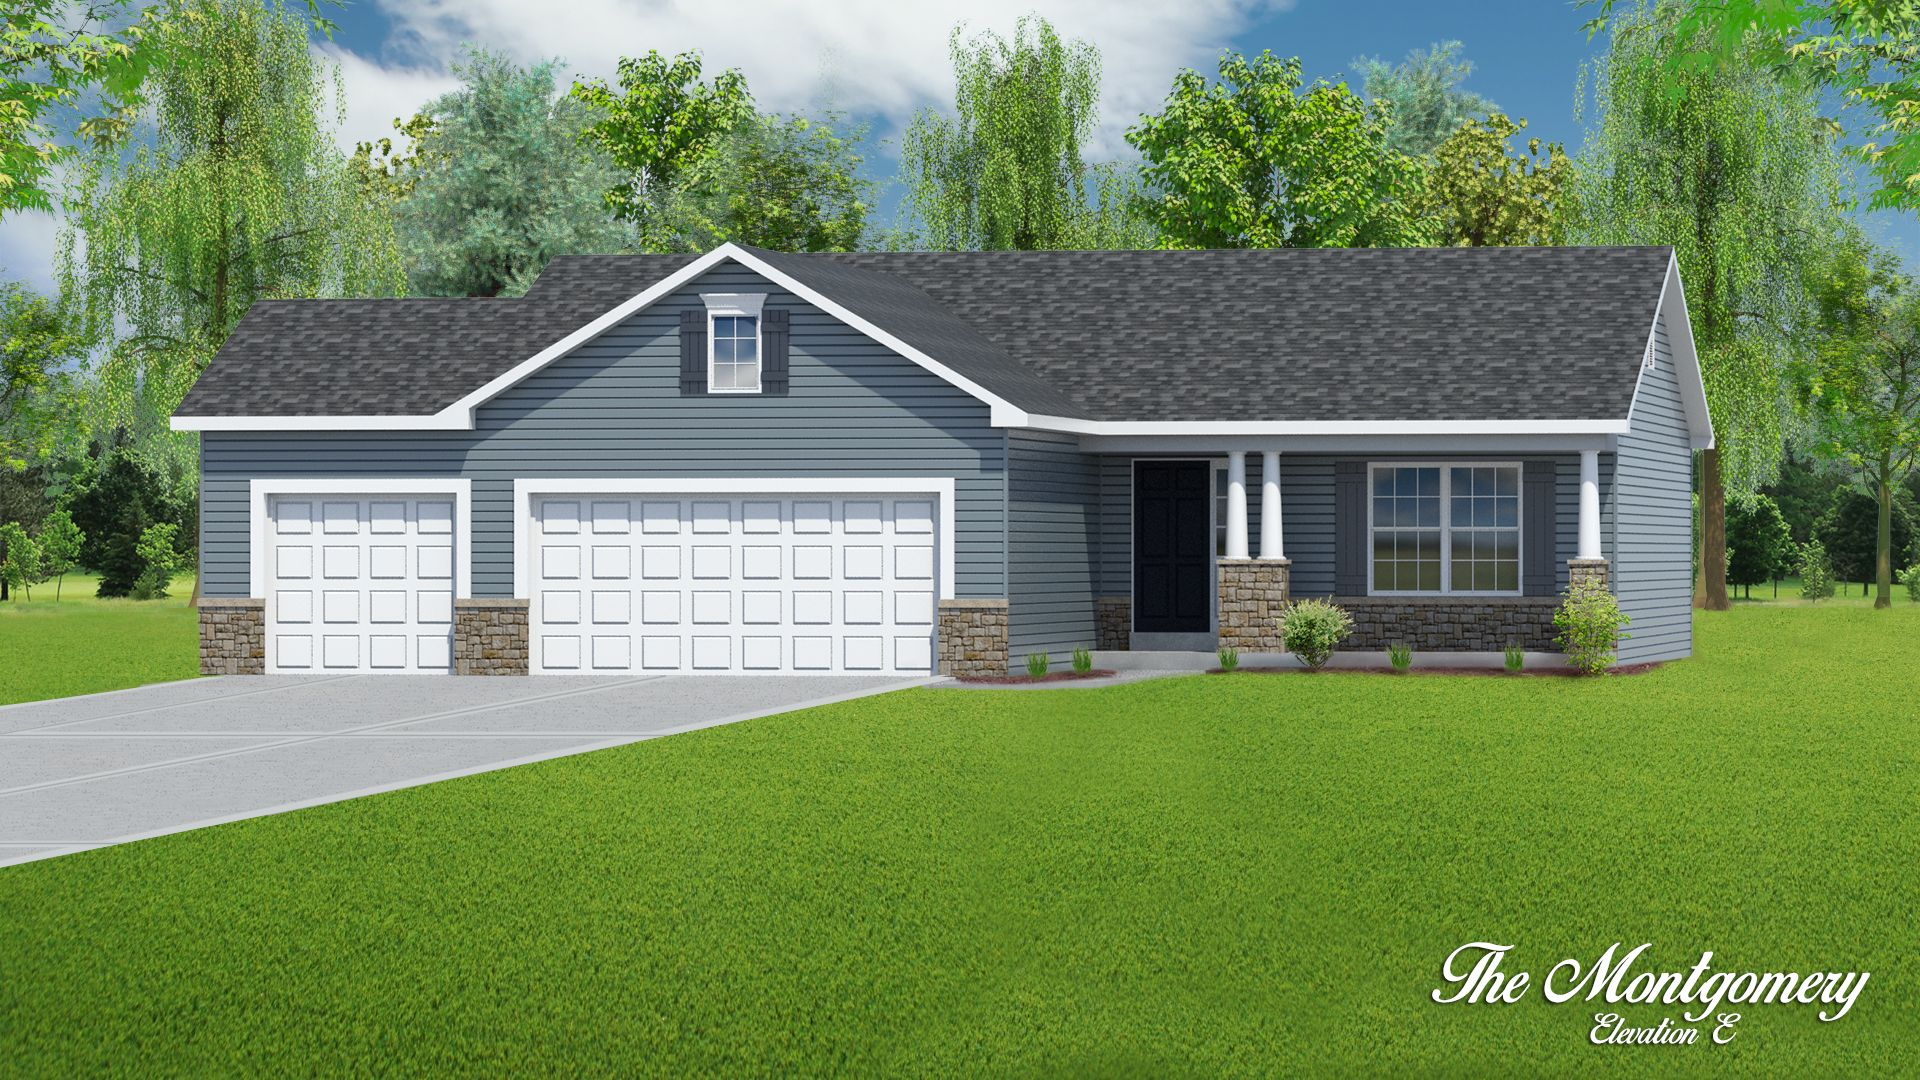 Exterior featured in The Montgomery - 3 Car Garage By T.R. Hughes Homes in St. Louis, MO